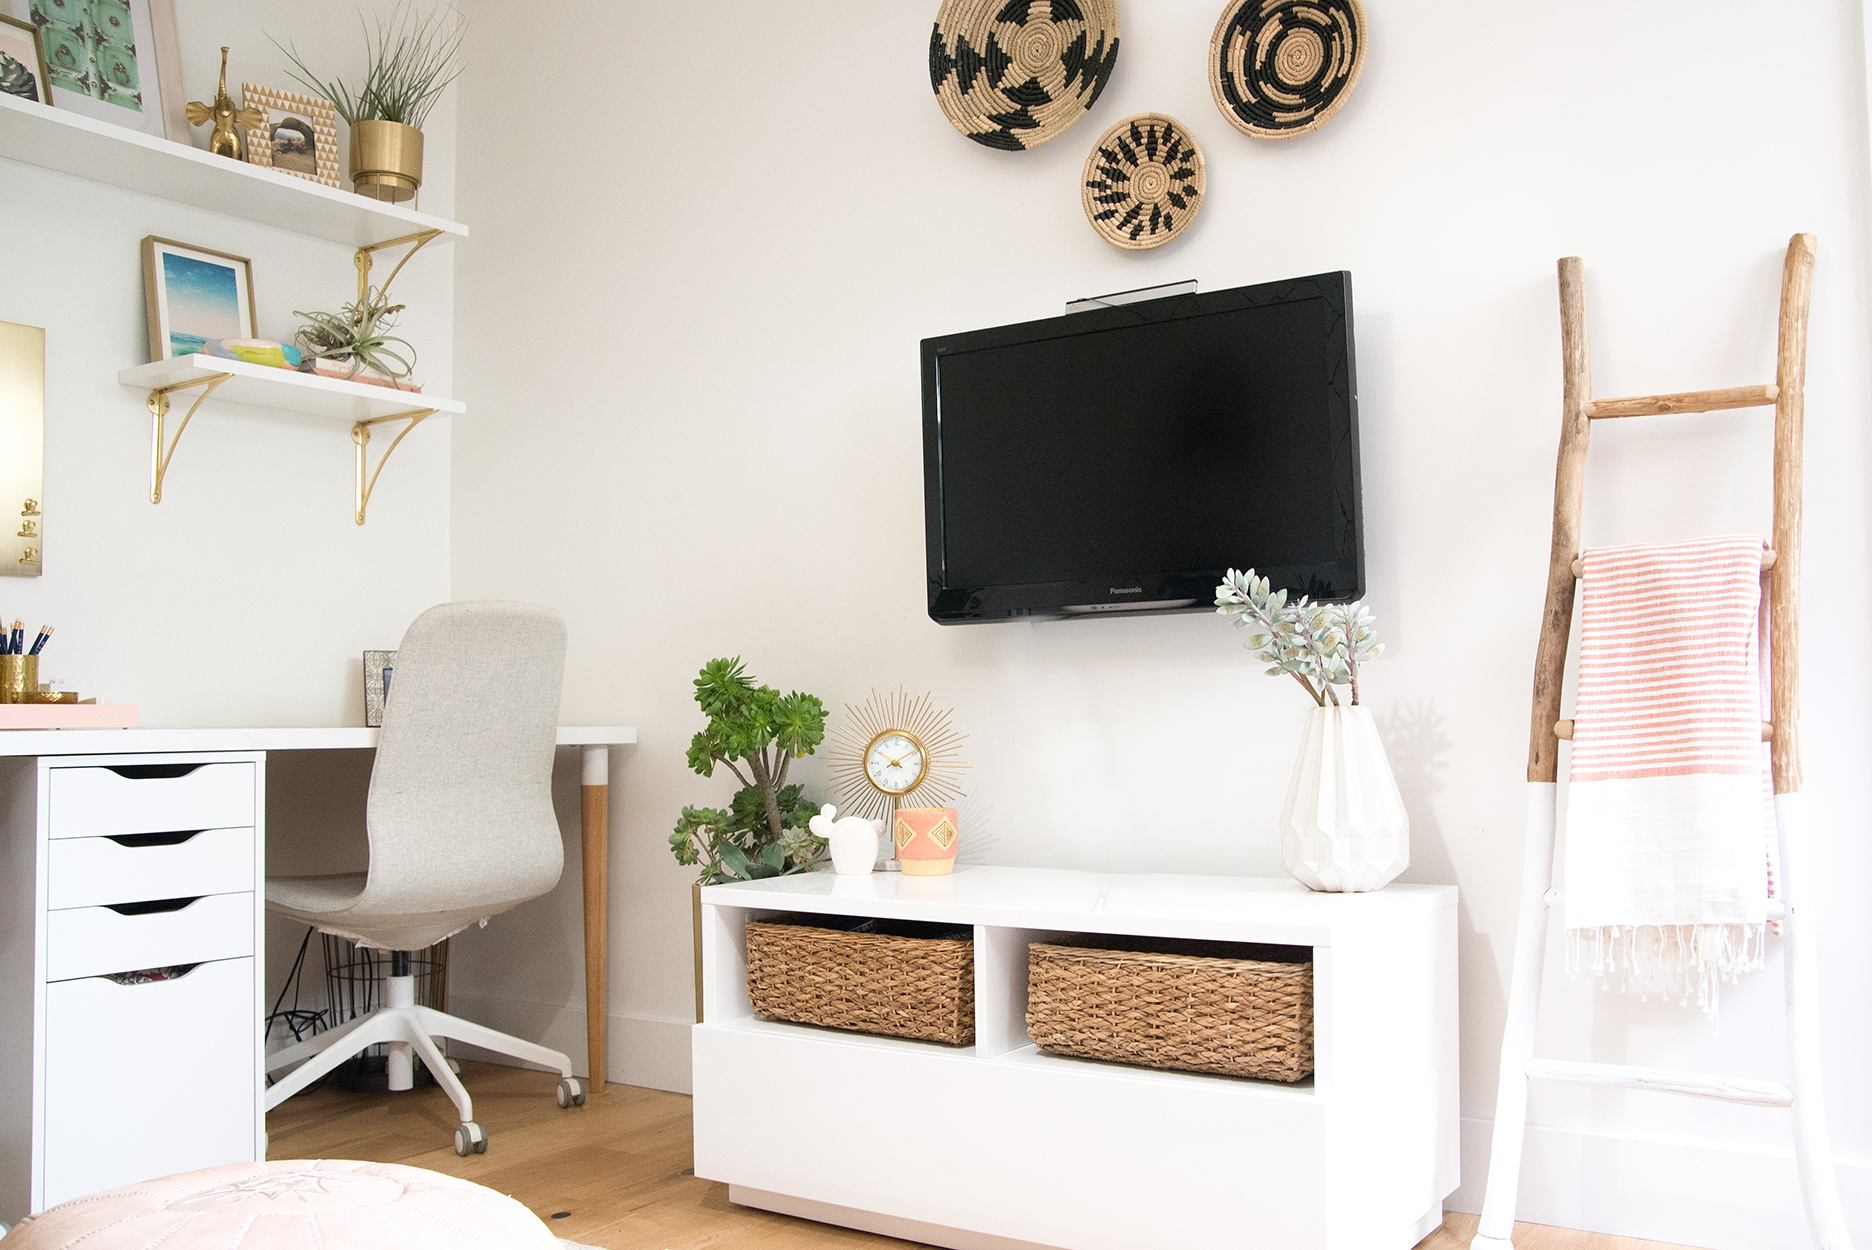 Office space with a white desk and grey chair with white and gold shelves above. A white TV console with baskets and a tv mounted on the wall above